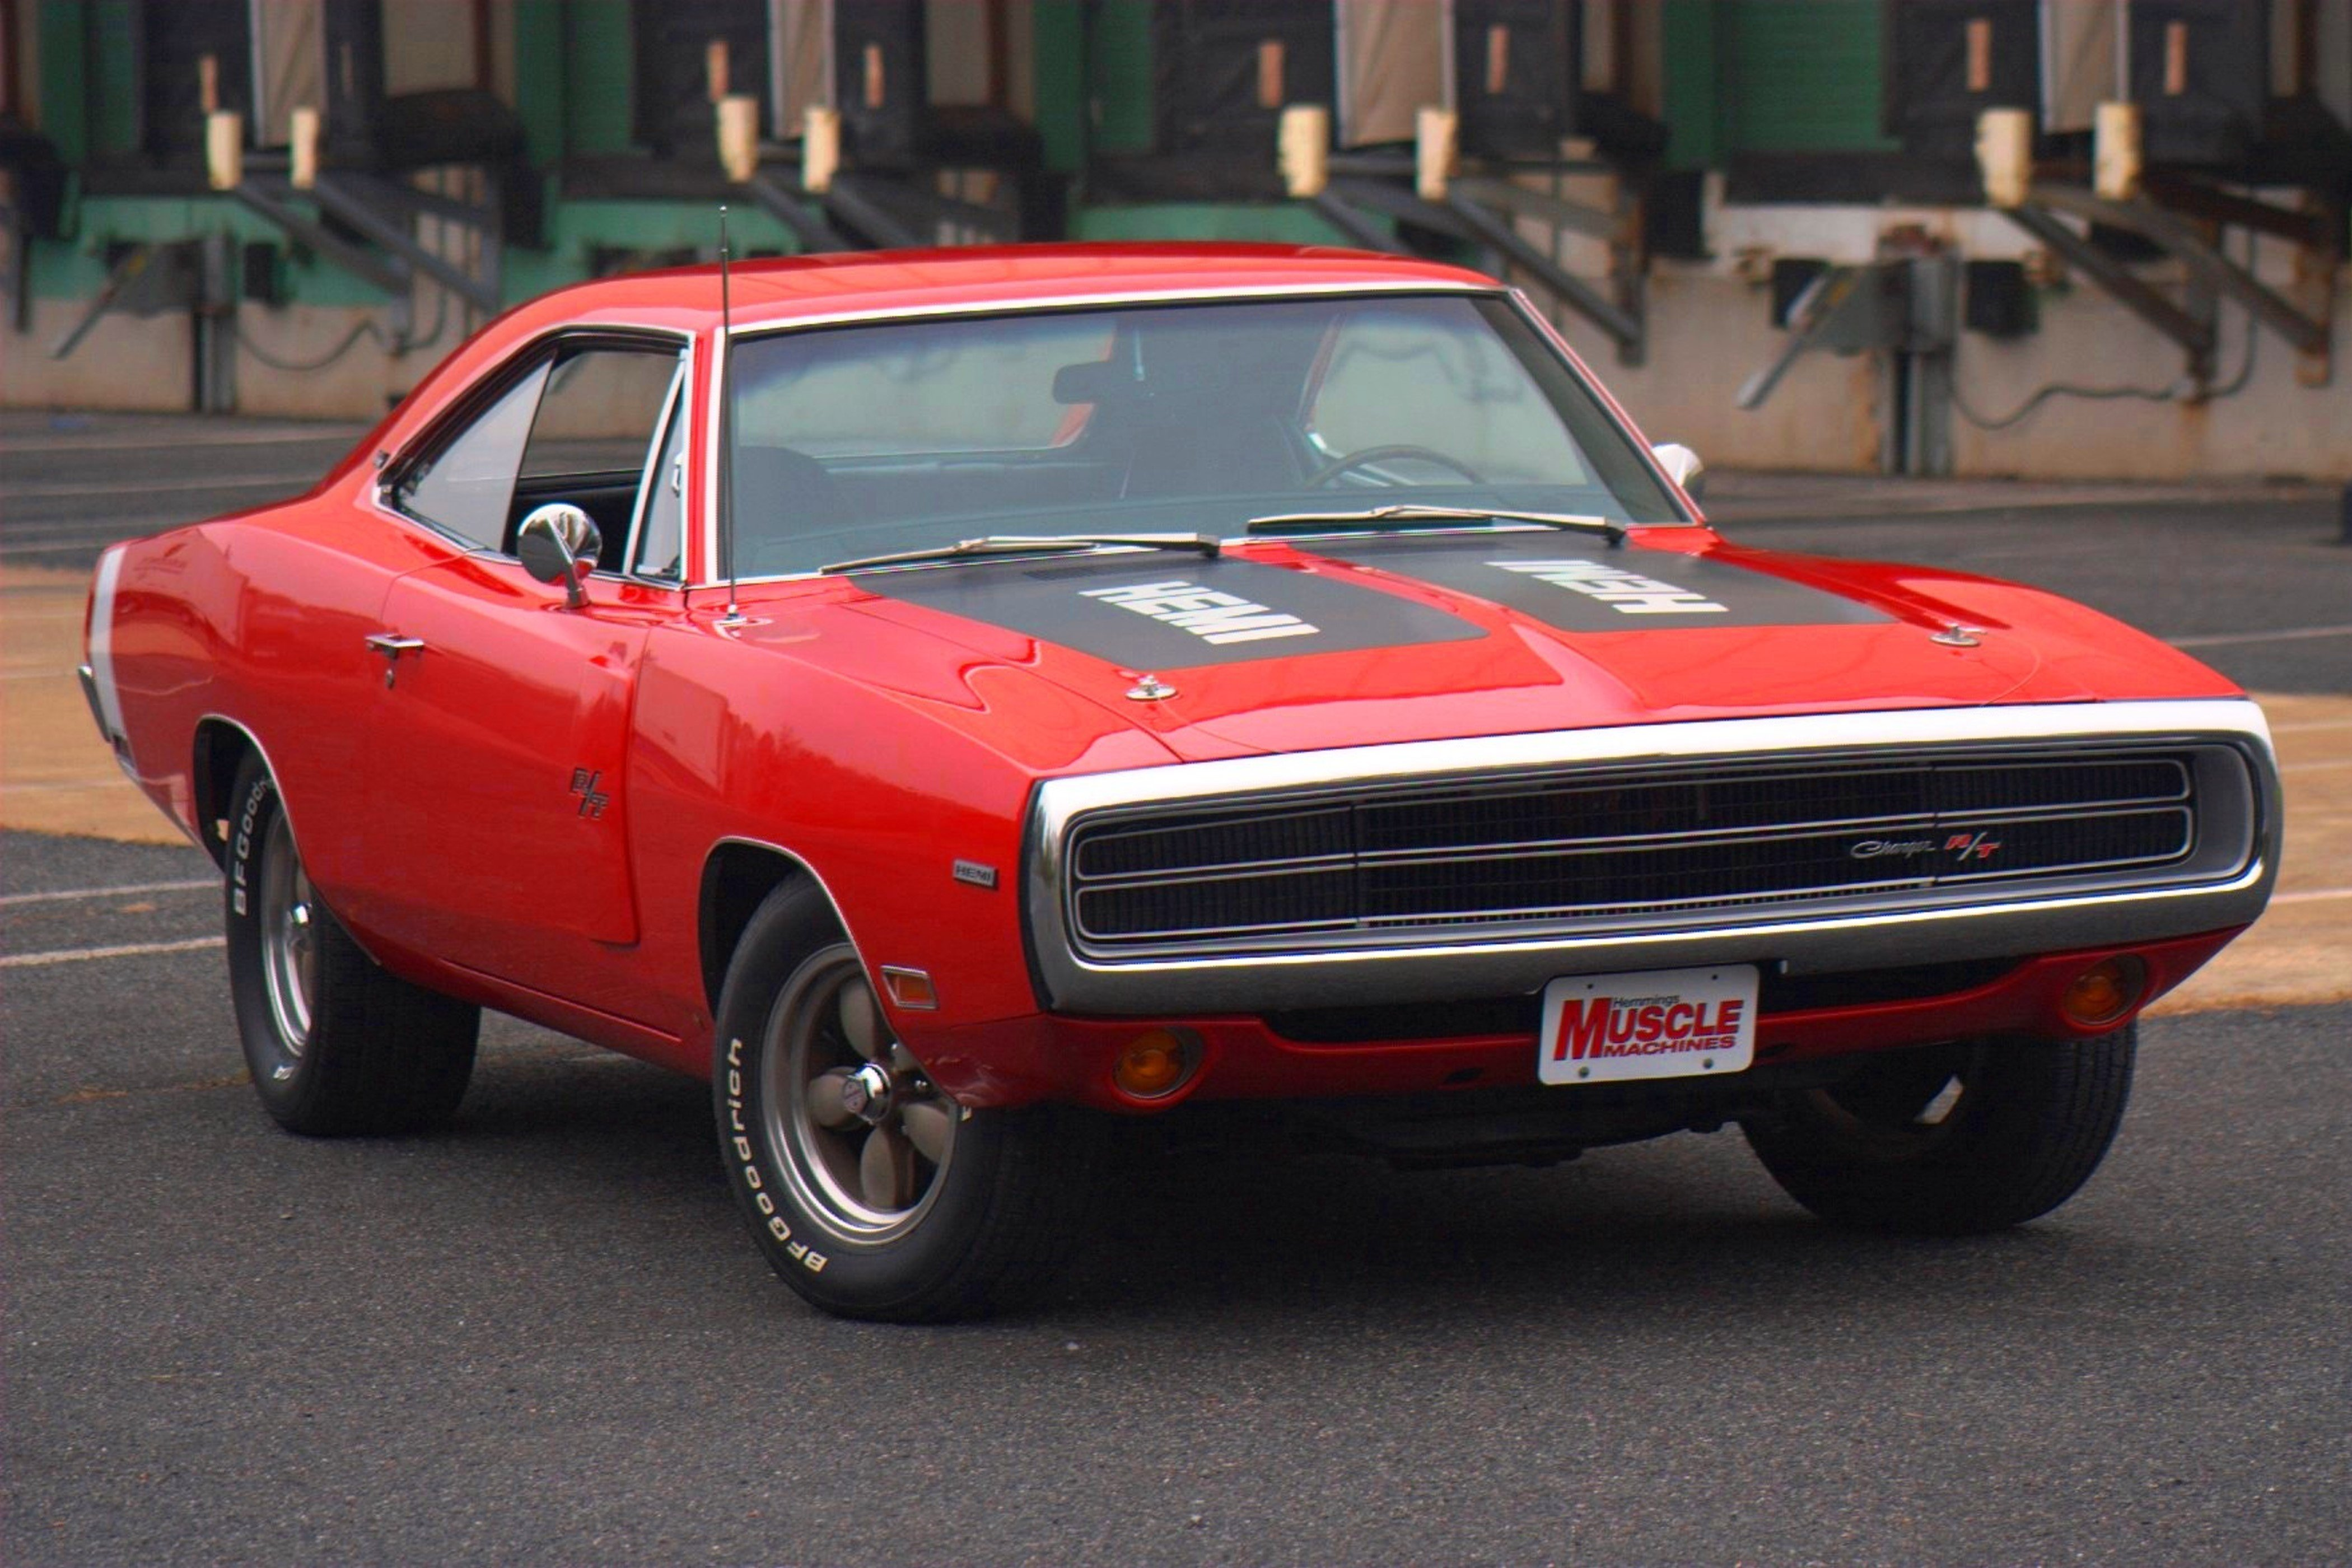 1968 Dodge Charger in addition Peter Sagans Custom 1970 Dodge Charger in addition Coupe furthermore 2018 Chevrolet Camaro Ss besides 1973 Dodge Charger. on 1969 dodge charger colors